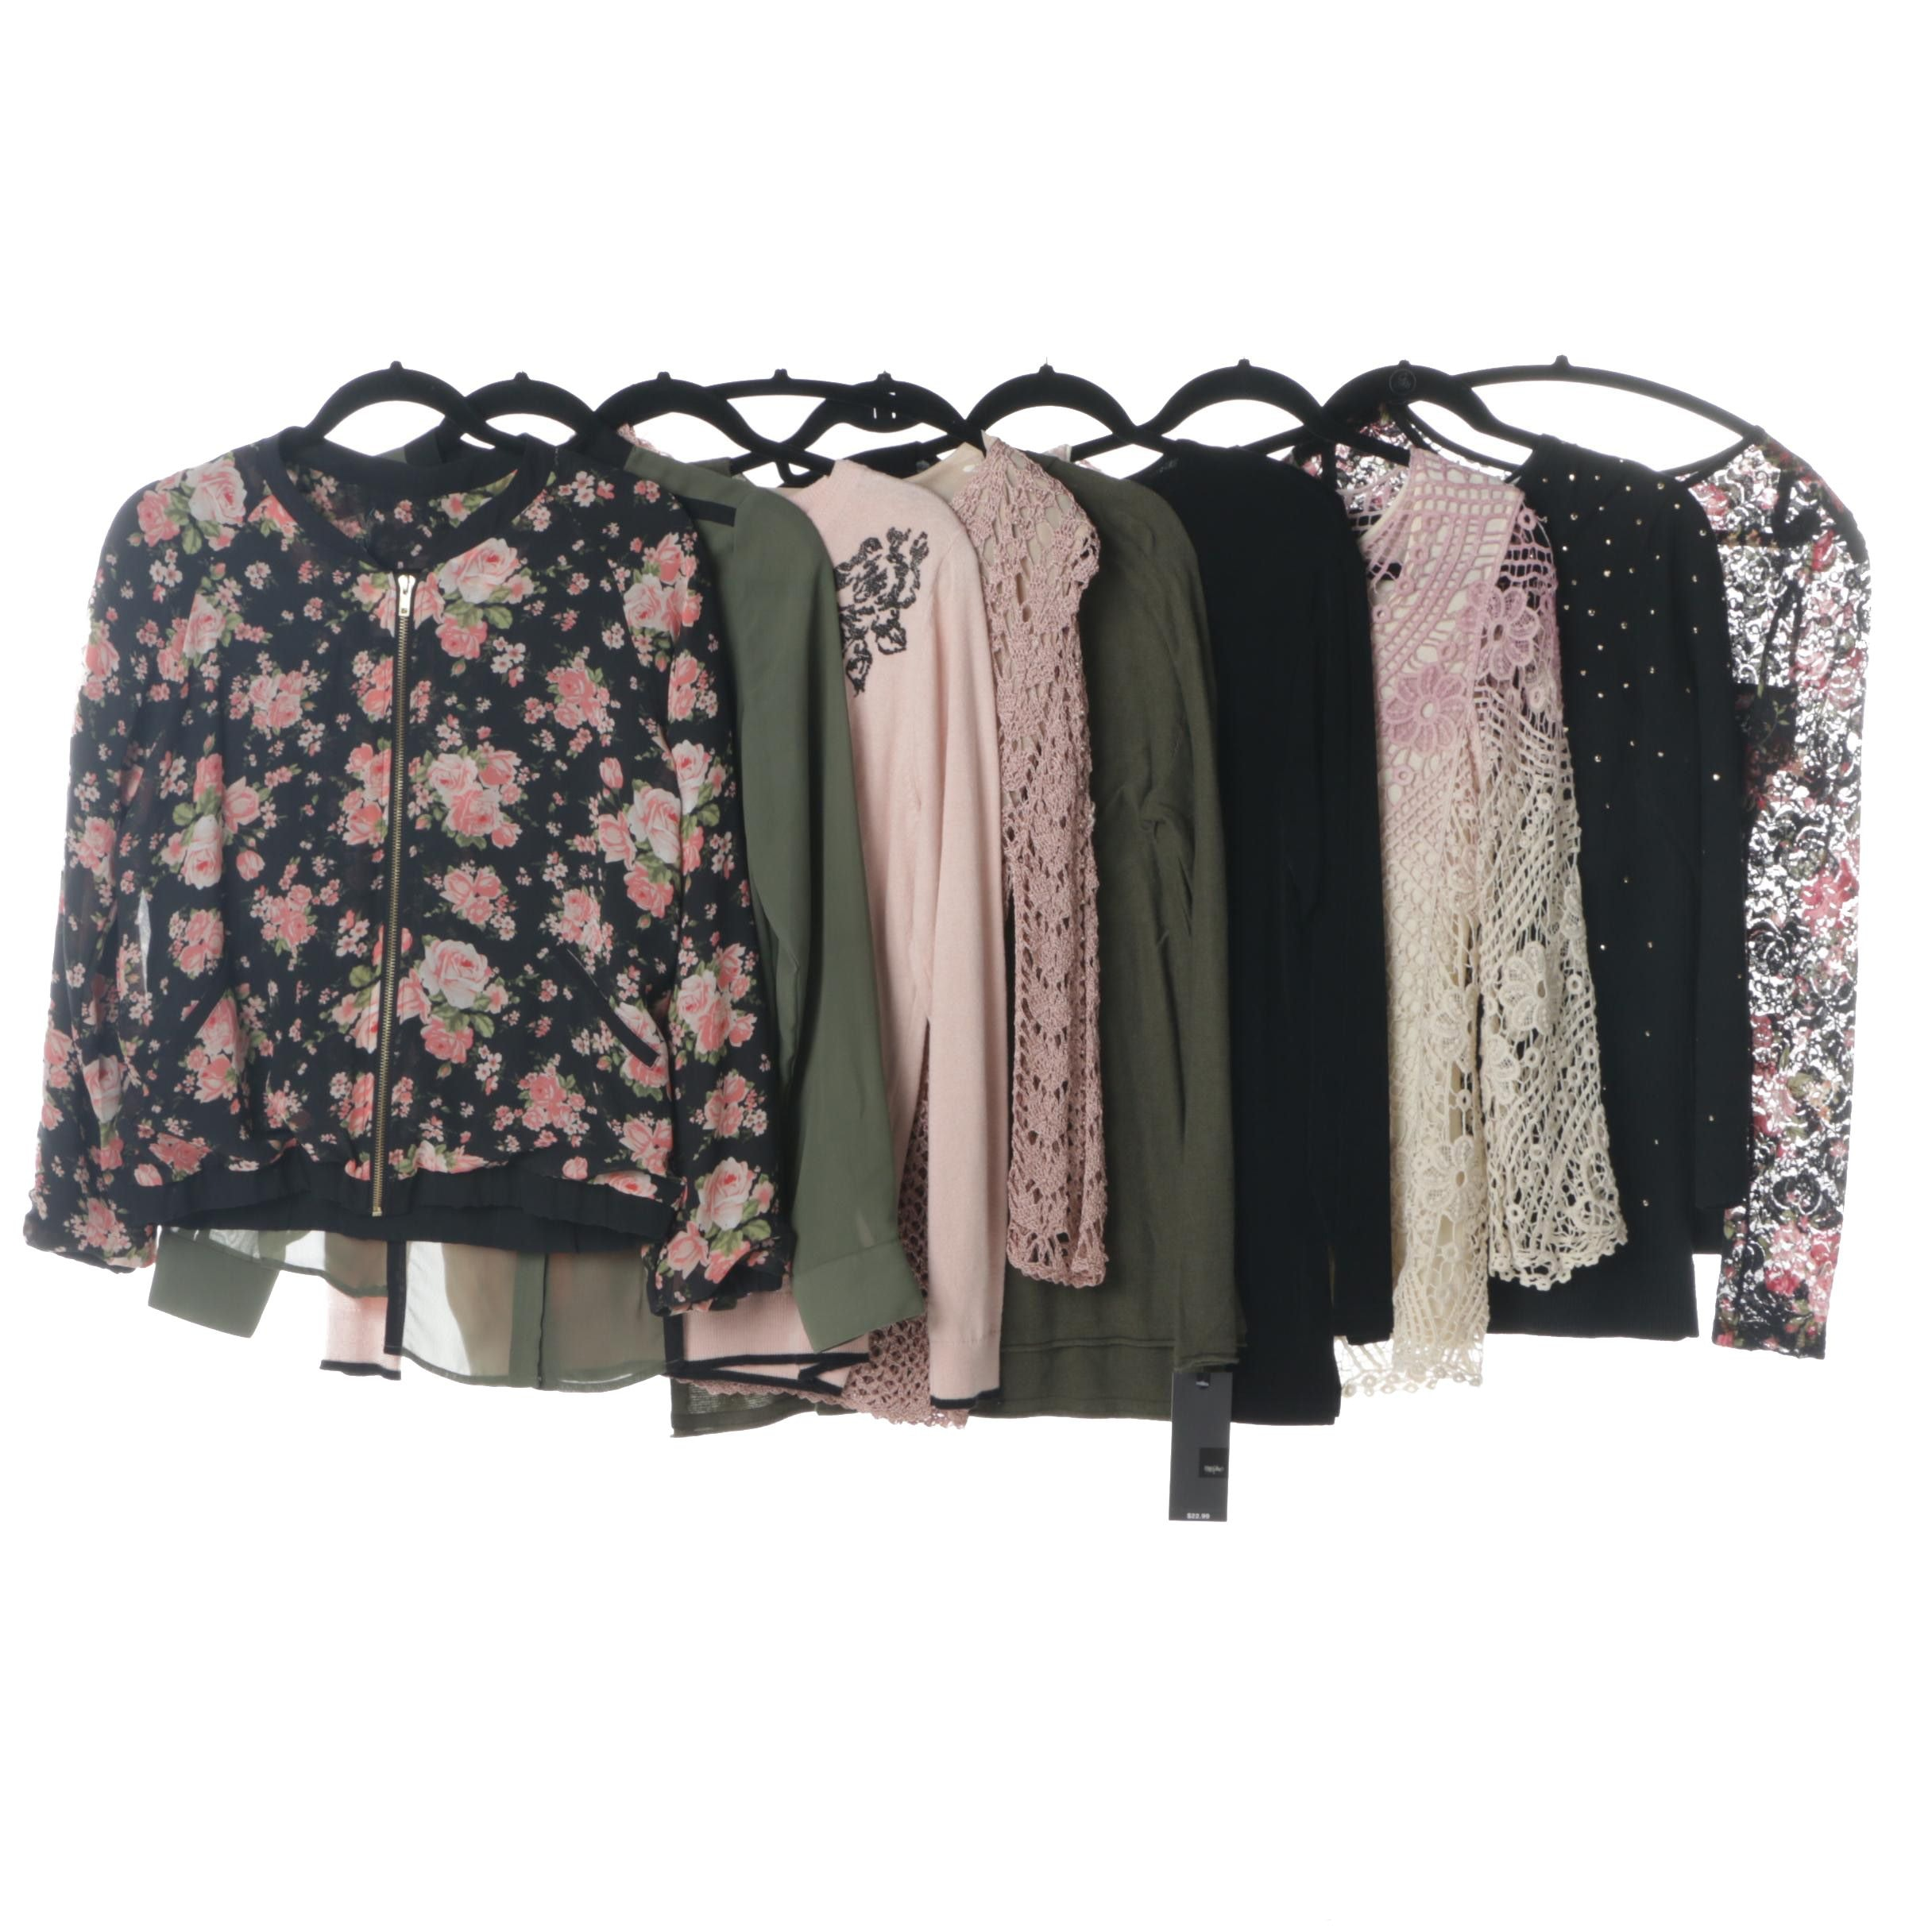 Women's Jackets, Blouses and Tops Including MICHAEL Michael Kors